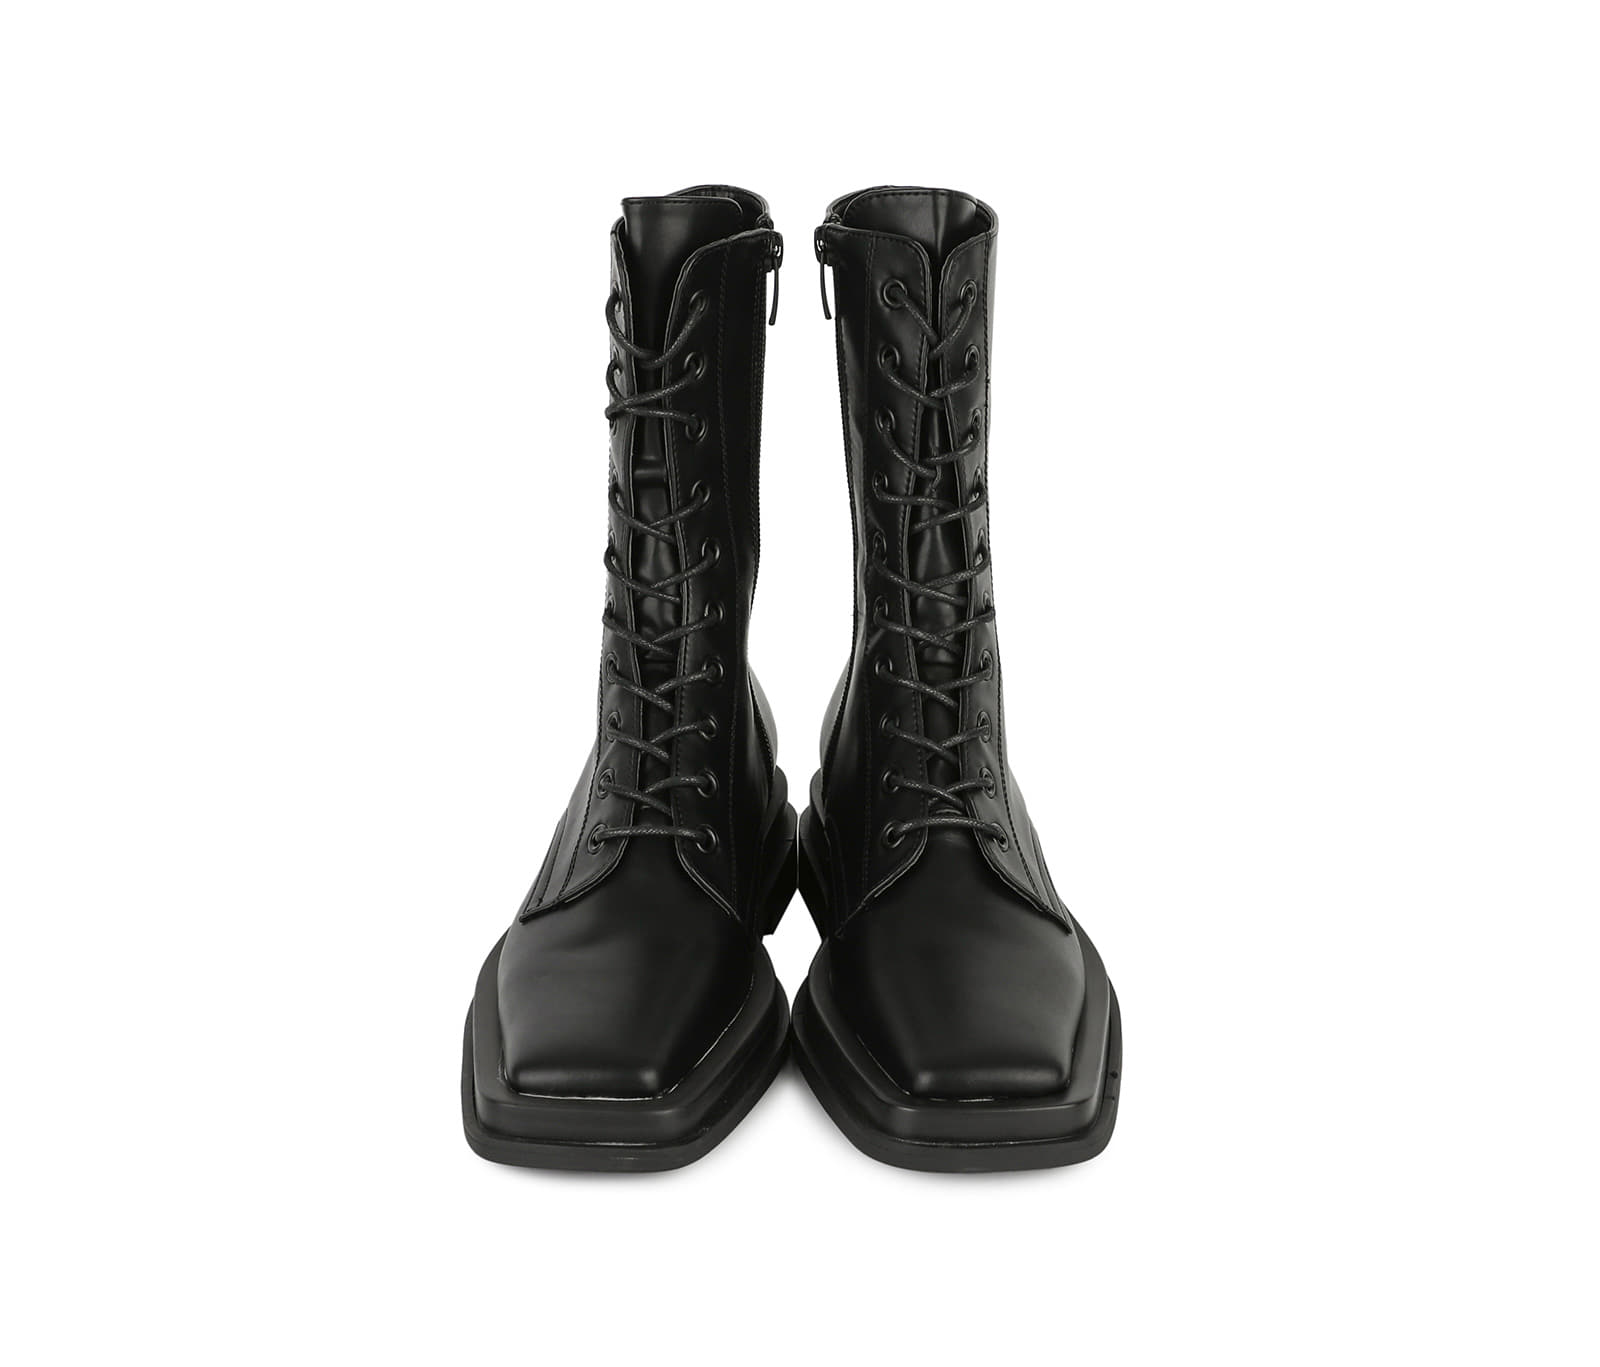 Pharaoh lace-up ankle boots